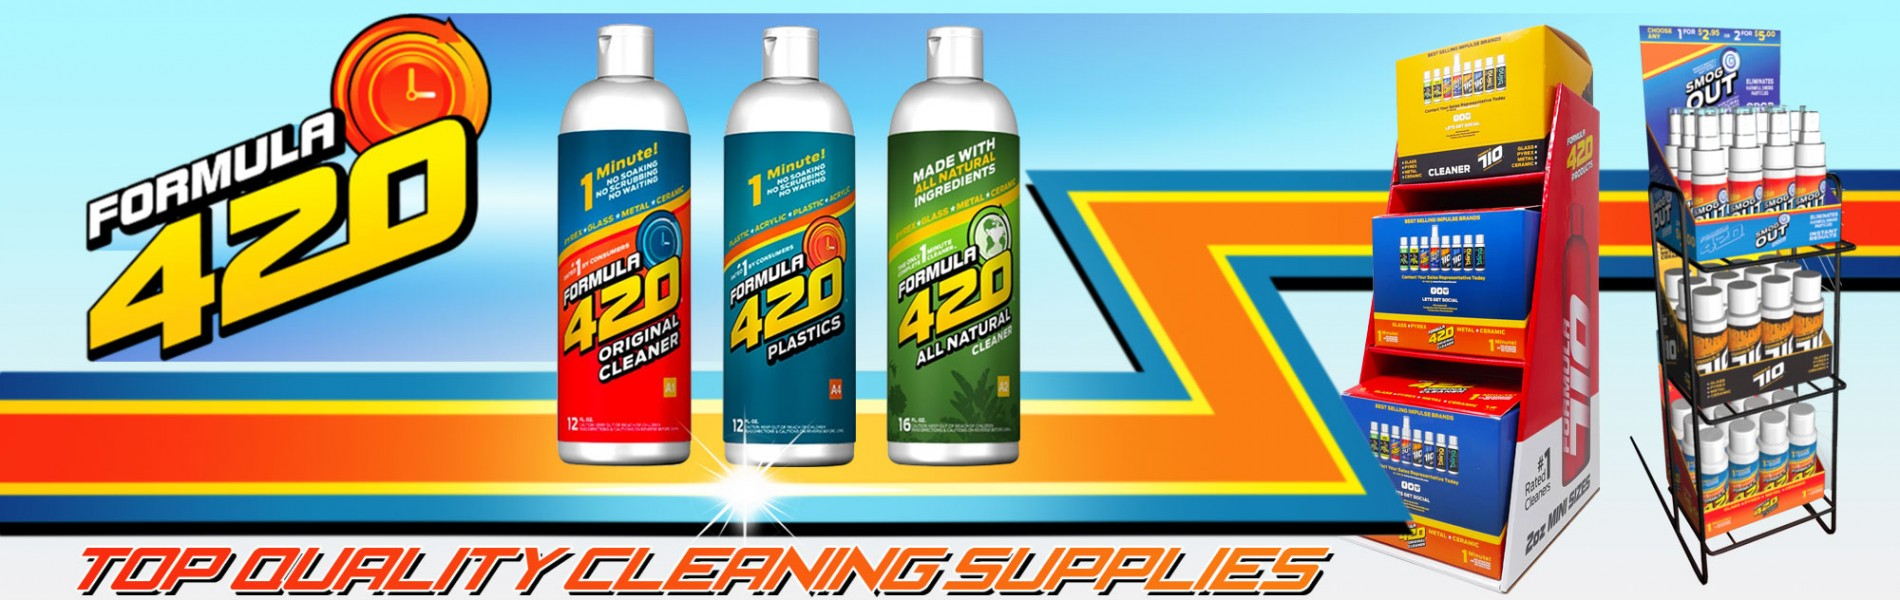 Formula 420 Cleaning Products